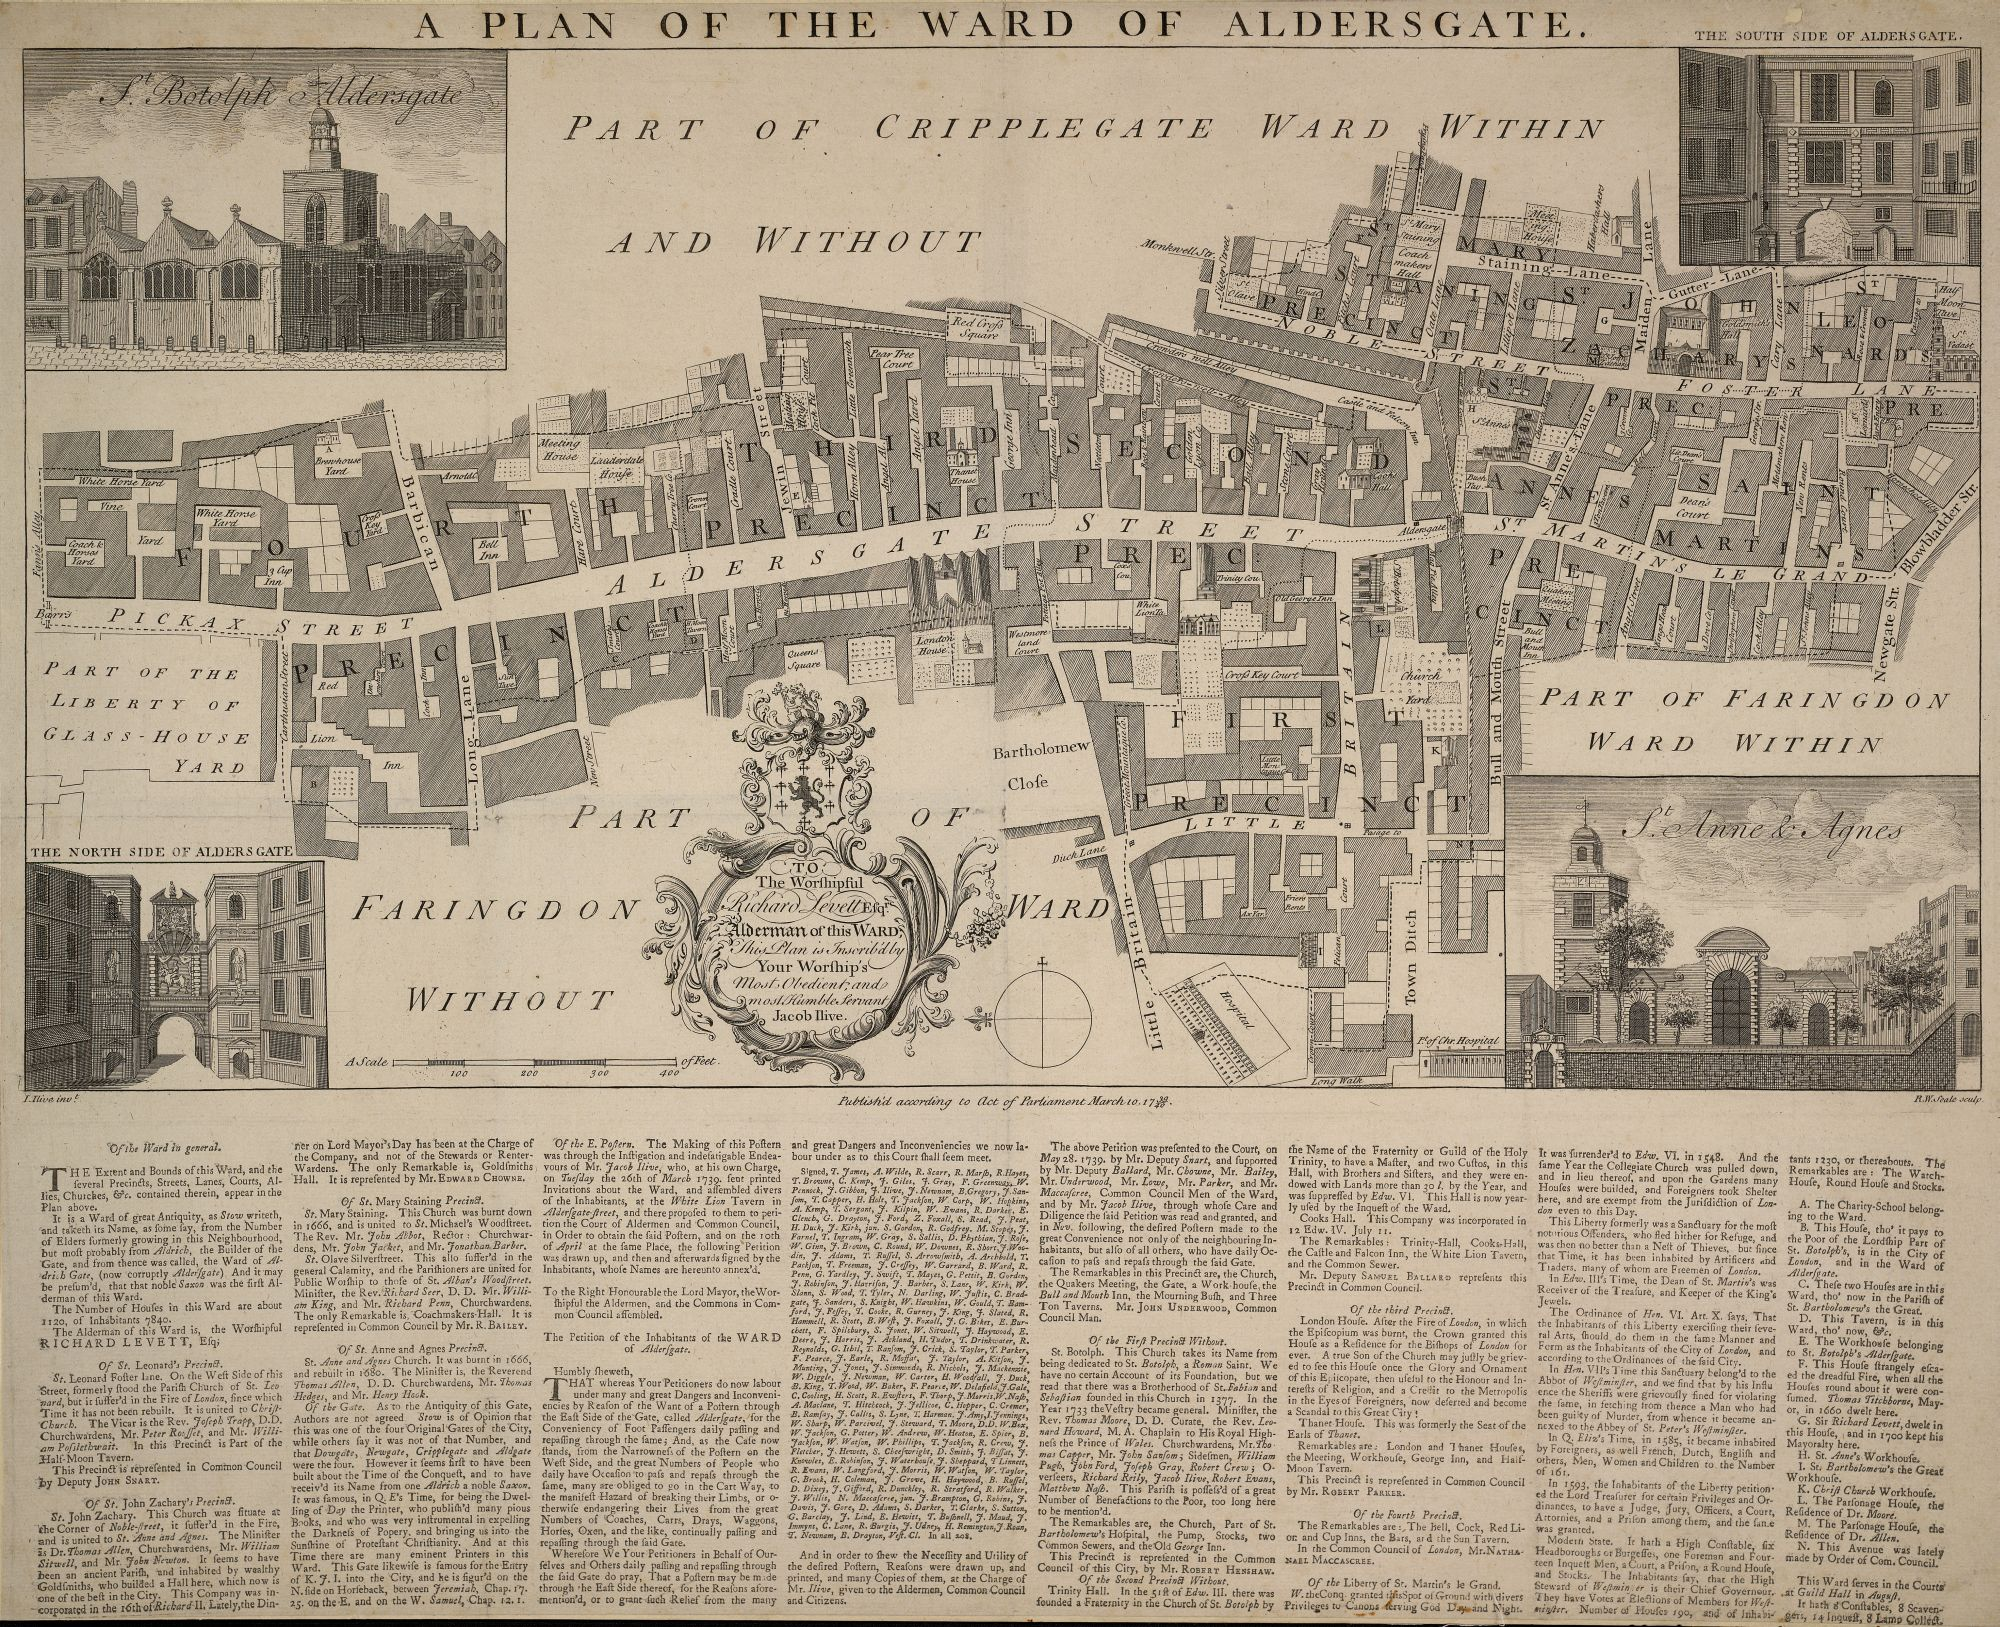 Richard William Seale after Jacob Ilive , A plan of the ward of Aldersgate (London: Jacob Ilive, 1739).Maps Crace Port. 8.2